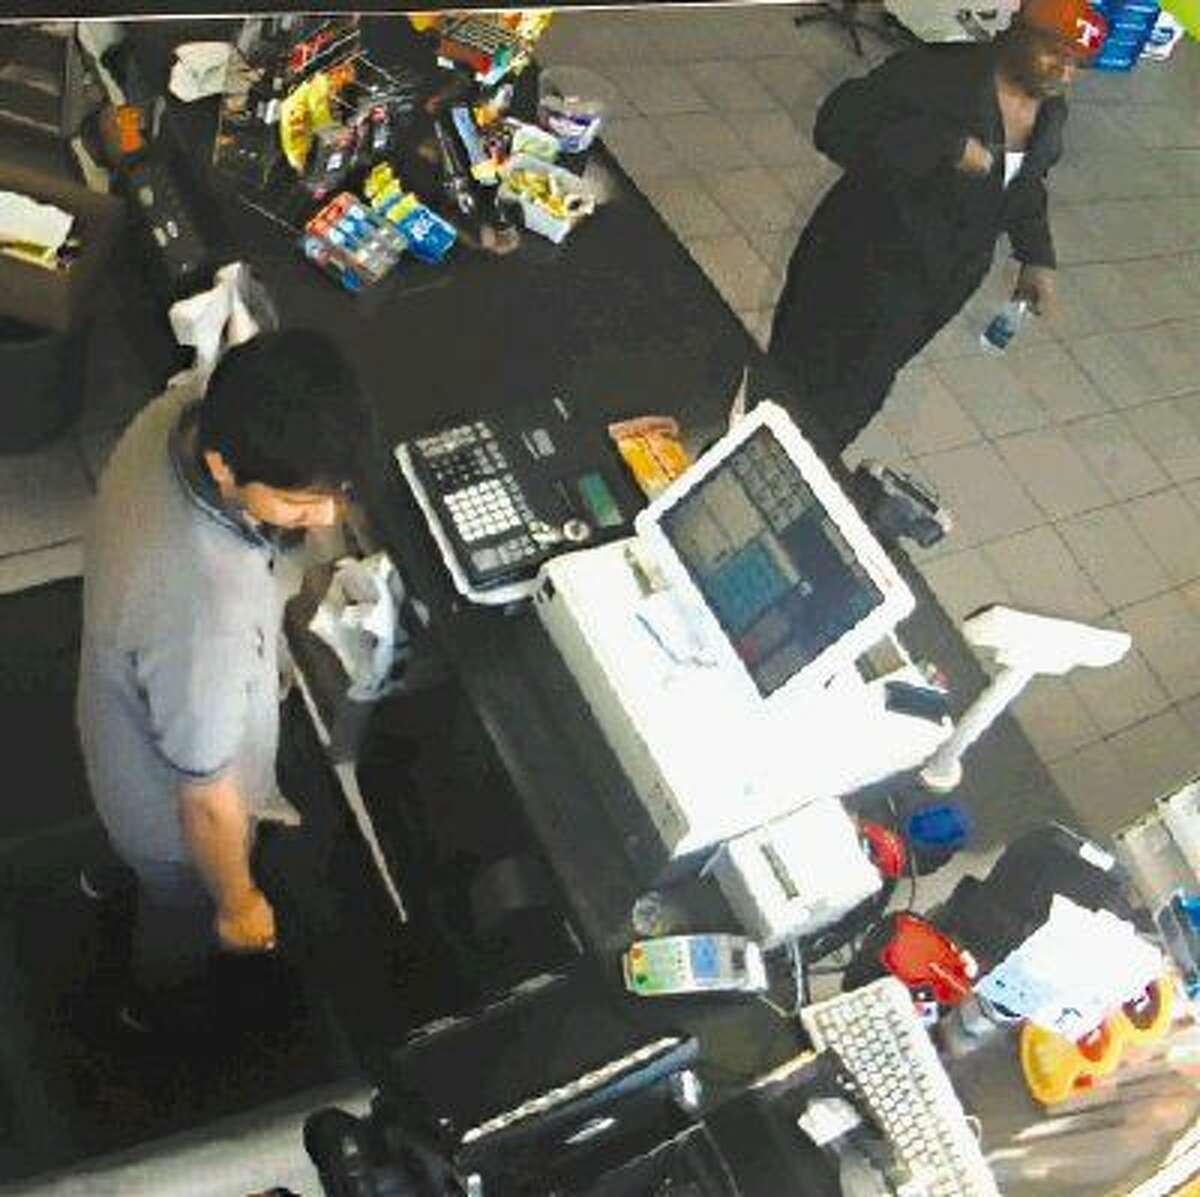 La Porte police are looking for two suspects involved in a theft at a gas station July 14.